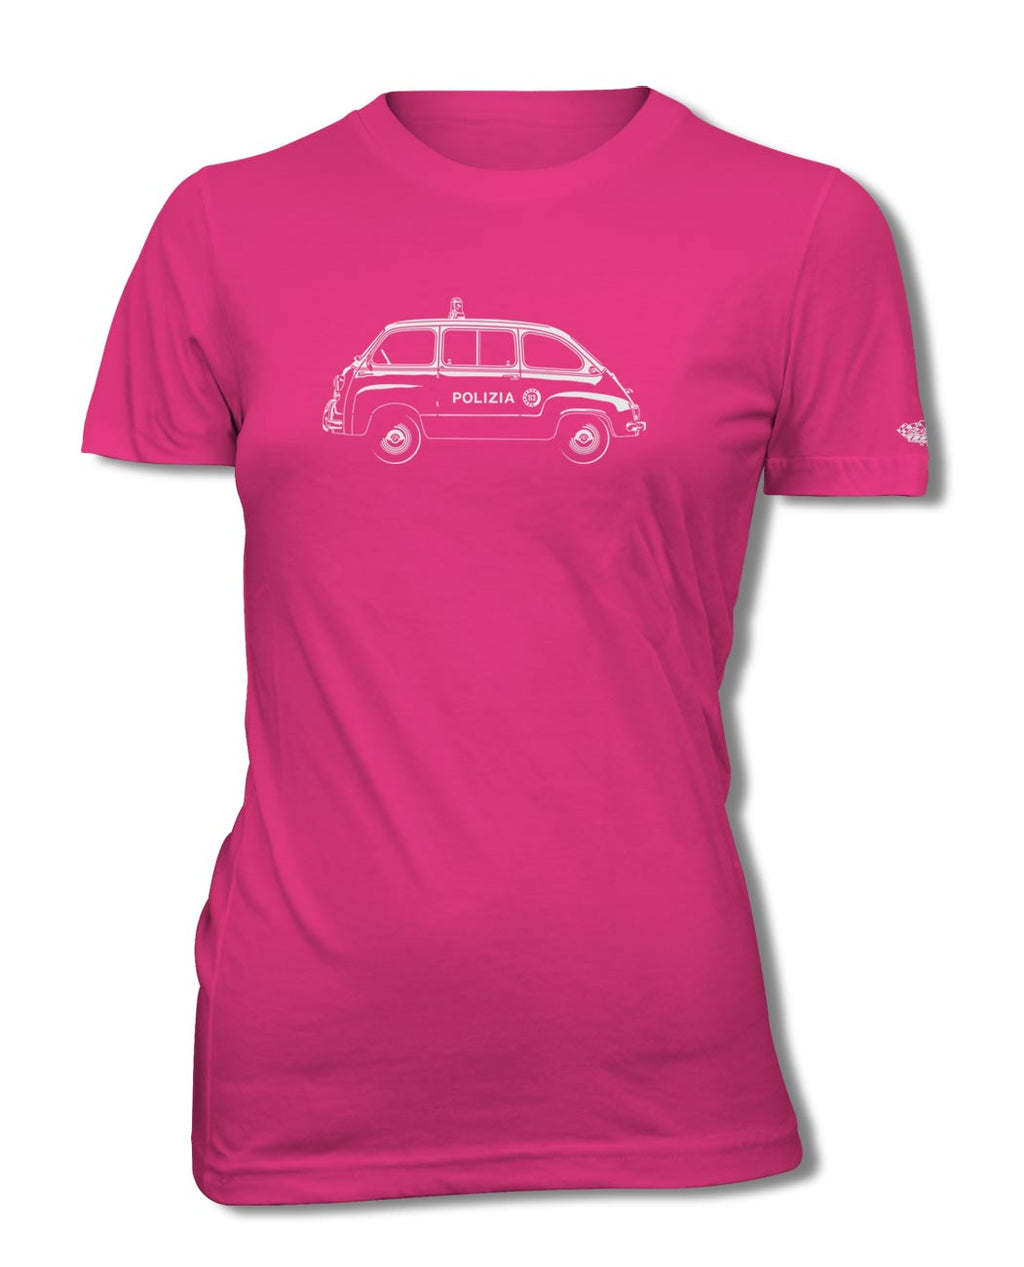 FIAT 600 Multipla Italian Polizia (police) 1956 - 1969 T-Shirt - Women - Side View